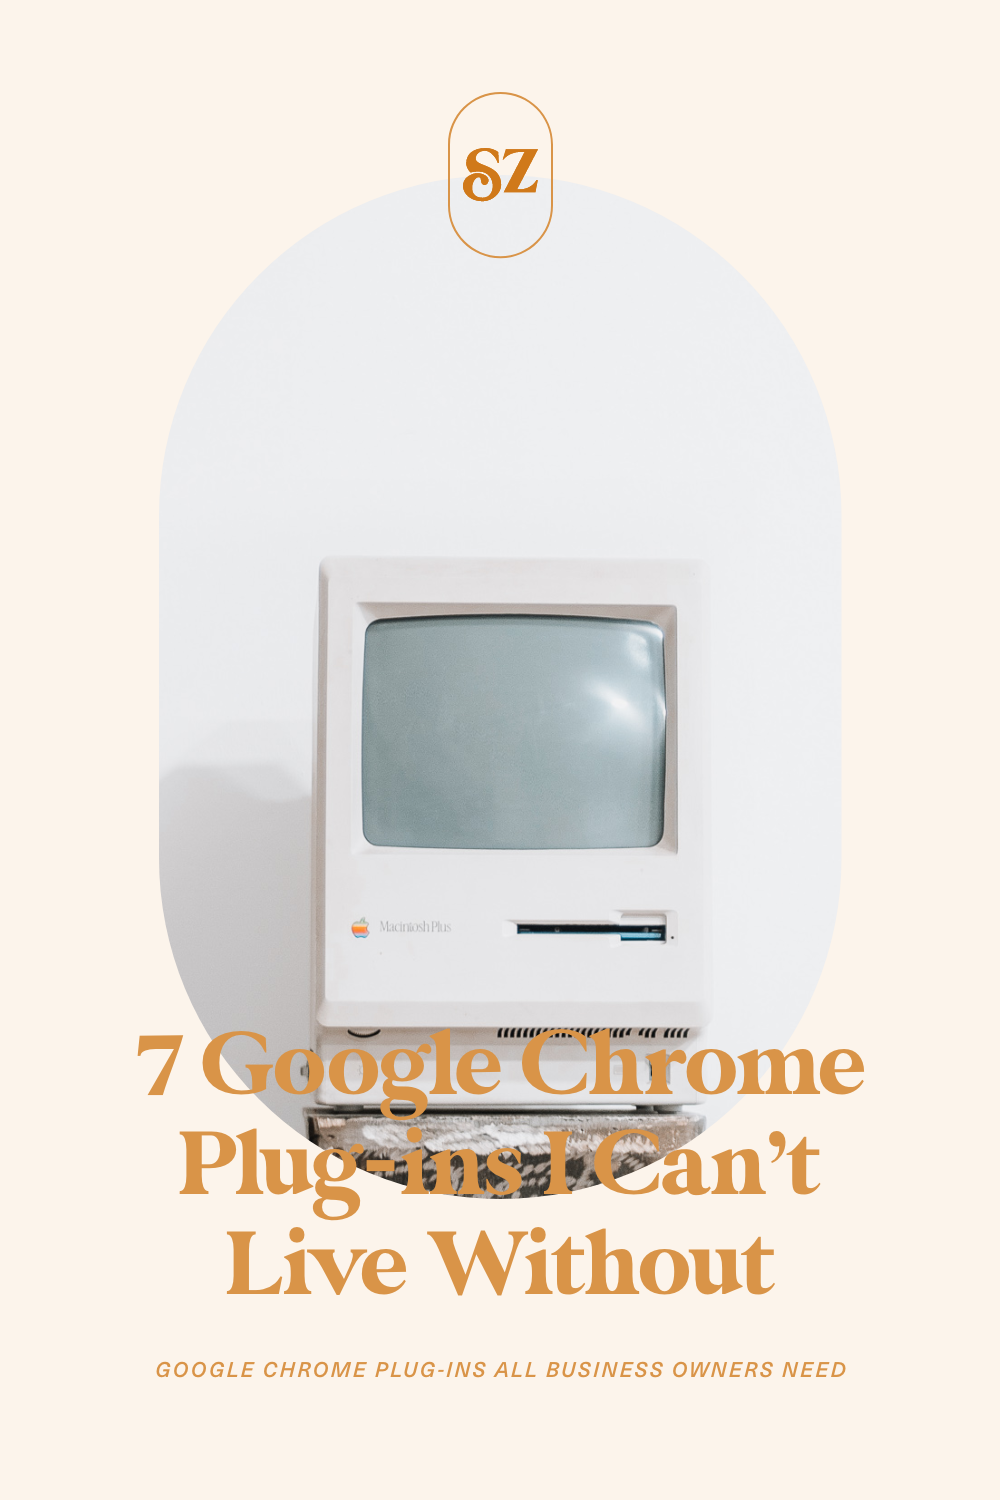 Pin it: 7 Google Chrome Plug-ins I Can't Live Without